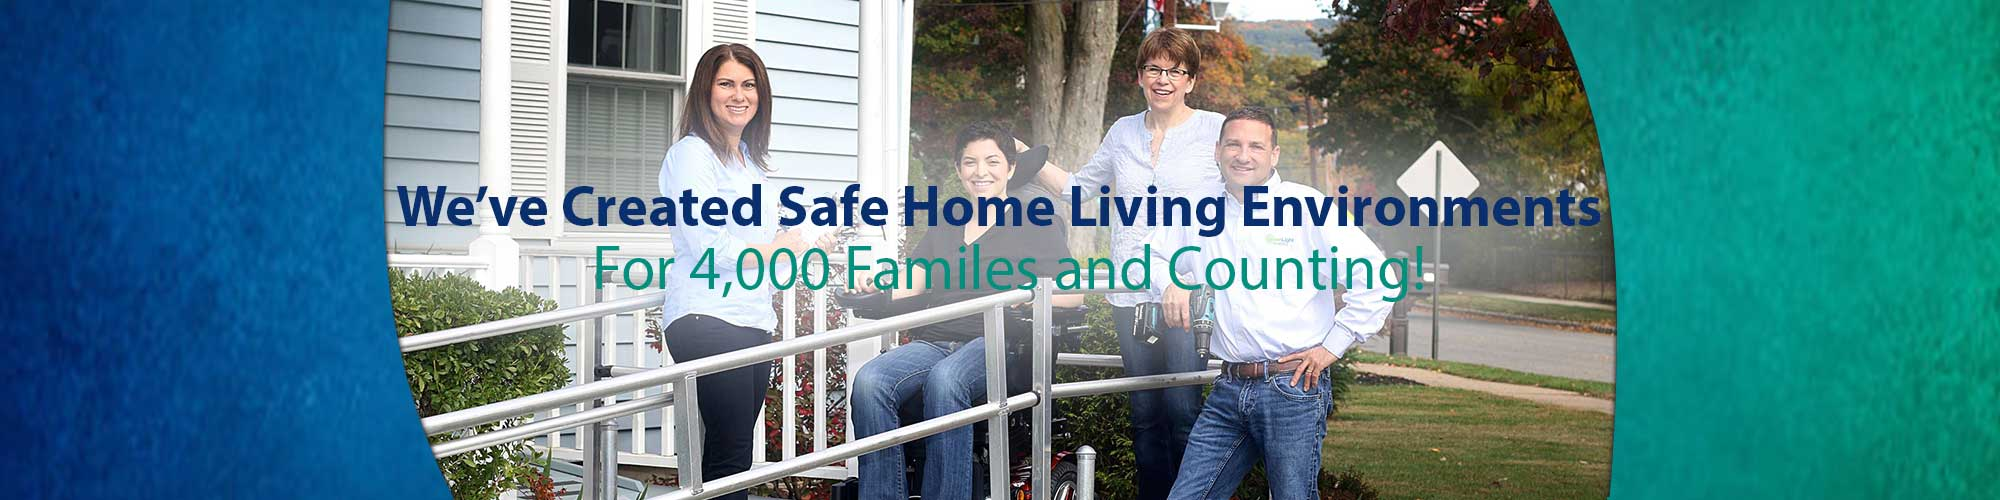 We have created safe home living environments for 1,000s of families